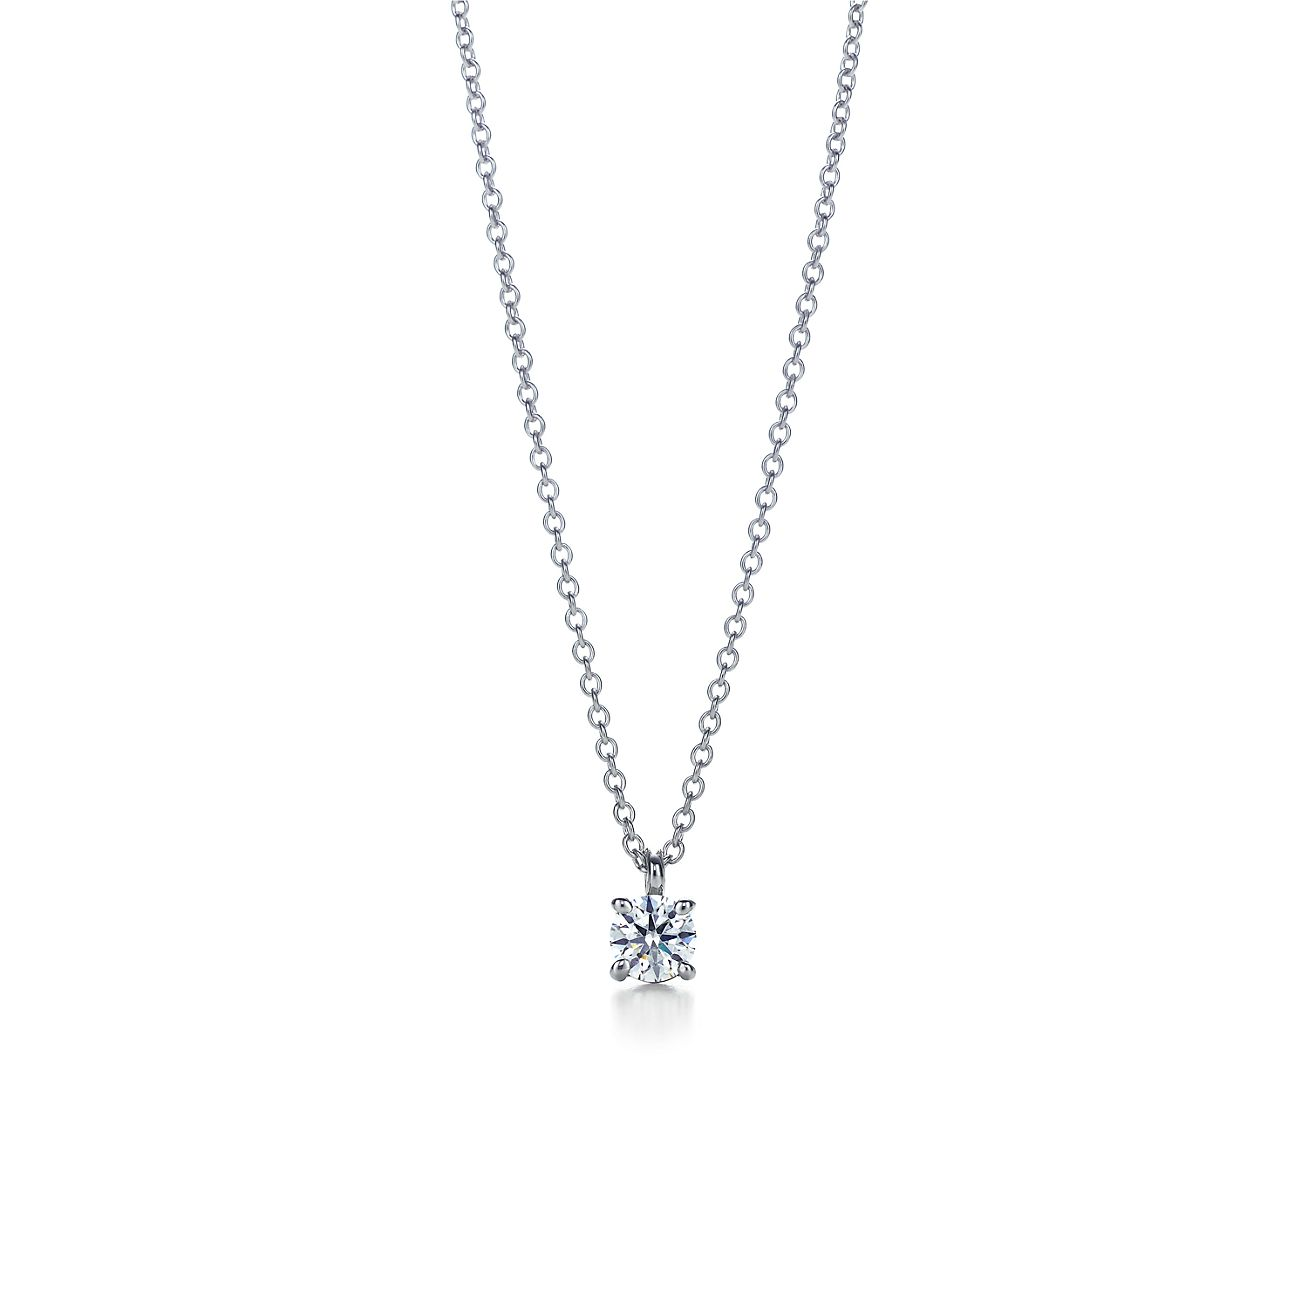 Tiffany® Anhänger mit Solitaire-Diamant